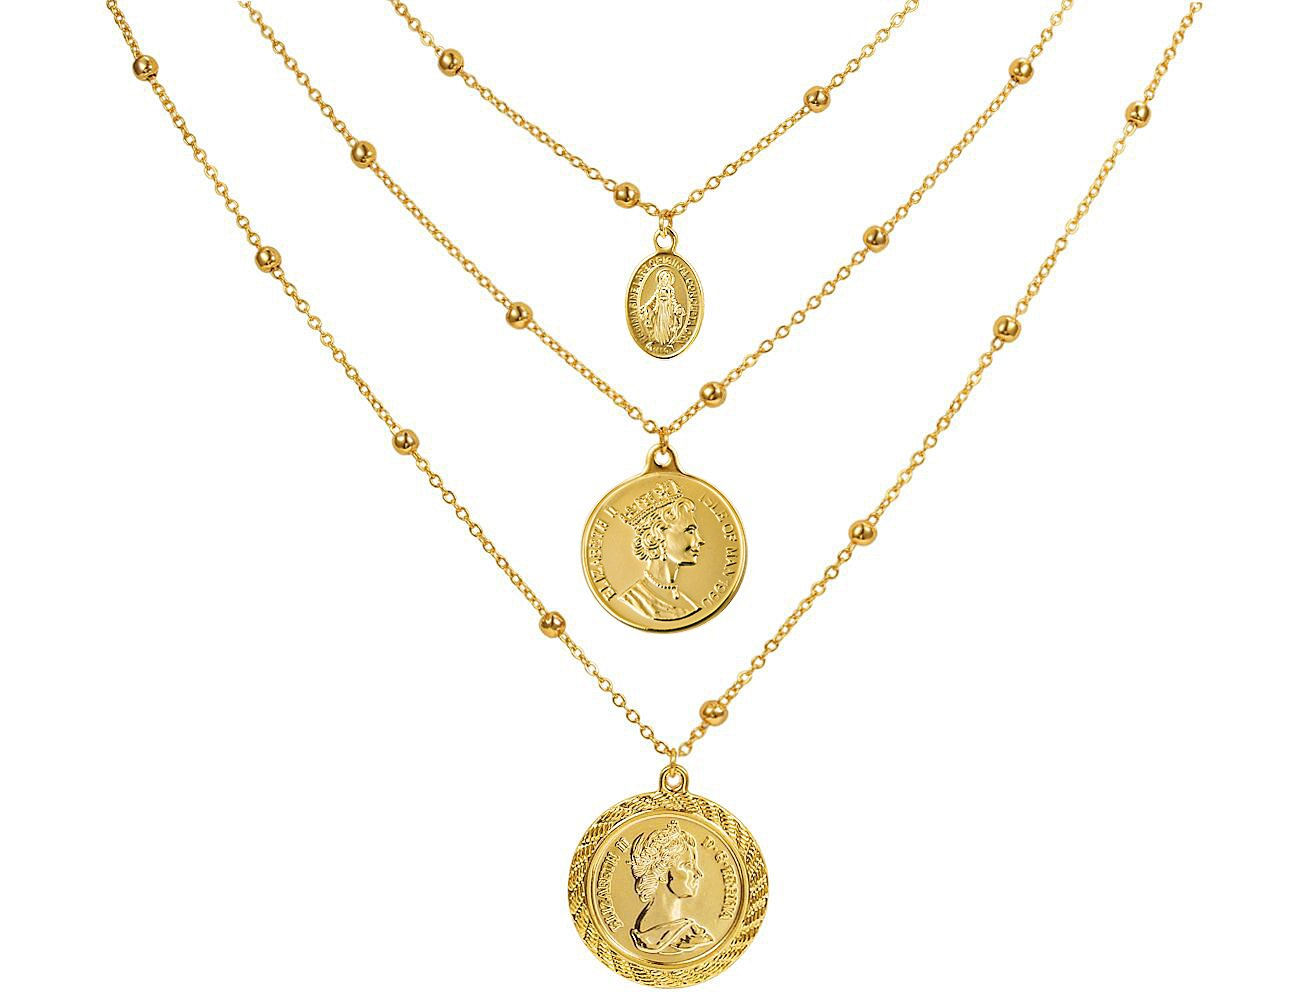 Coin Pendant Necklace 18K Gold Plated Canadian Coin Ball Chain Coin Vintage Layered Necklace for Women Jewelry